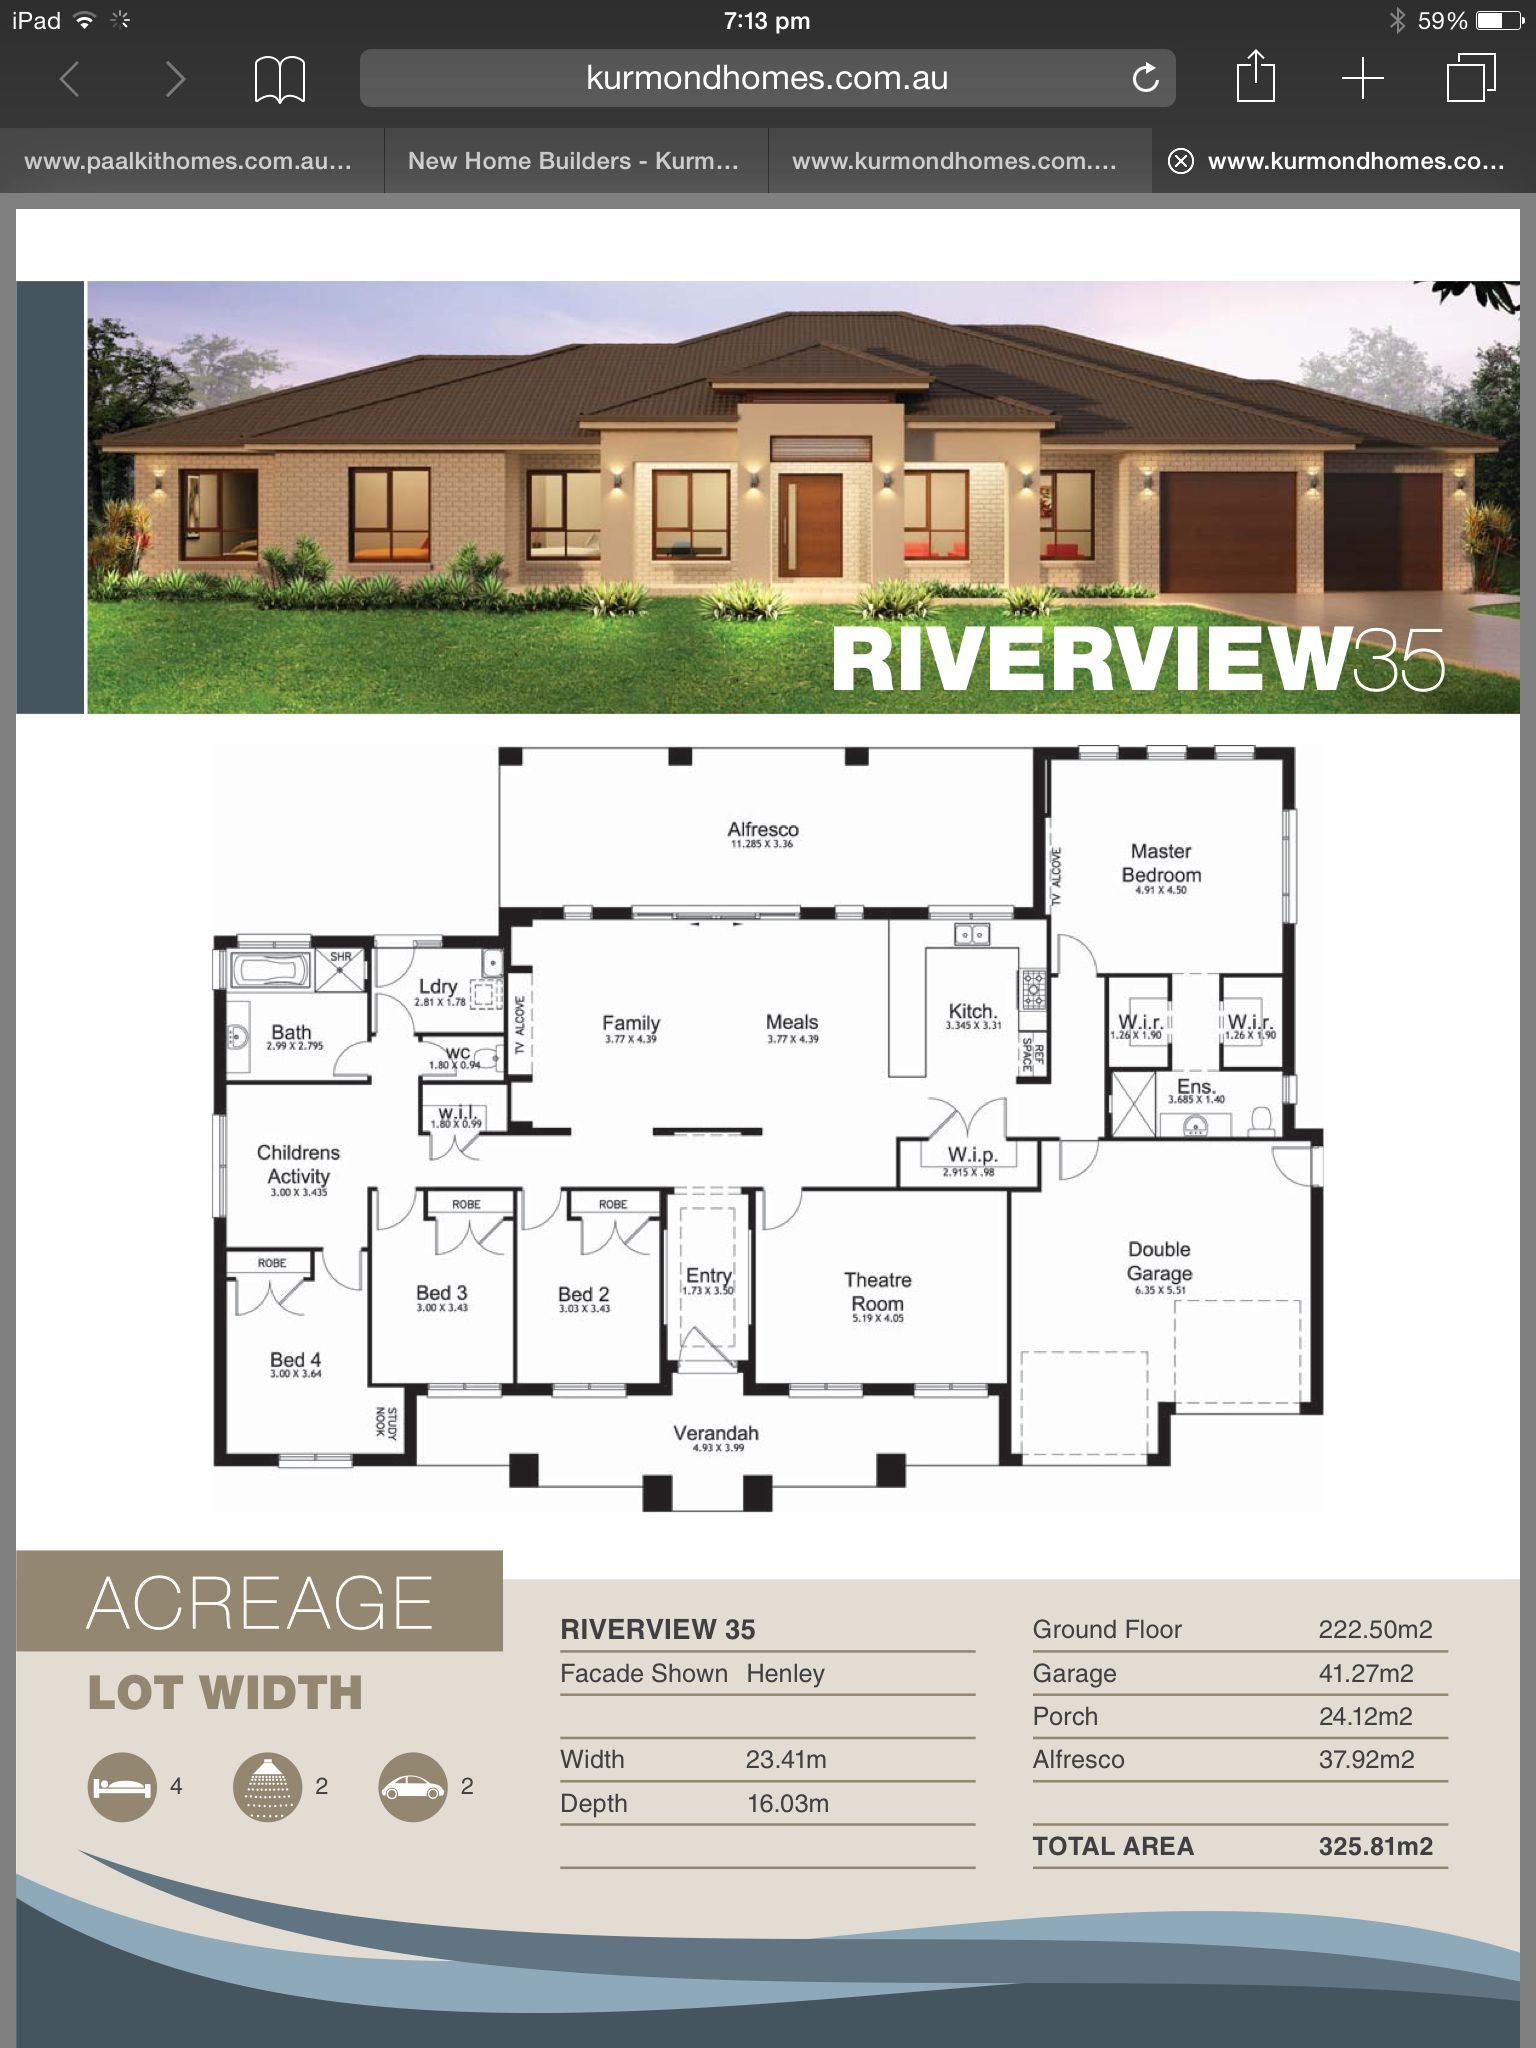 Kurmond Homes Riverview 35 Beautiful House Plans House Plans South Africa Architectural House Plans